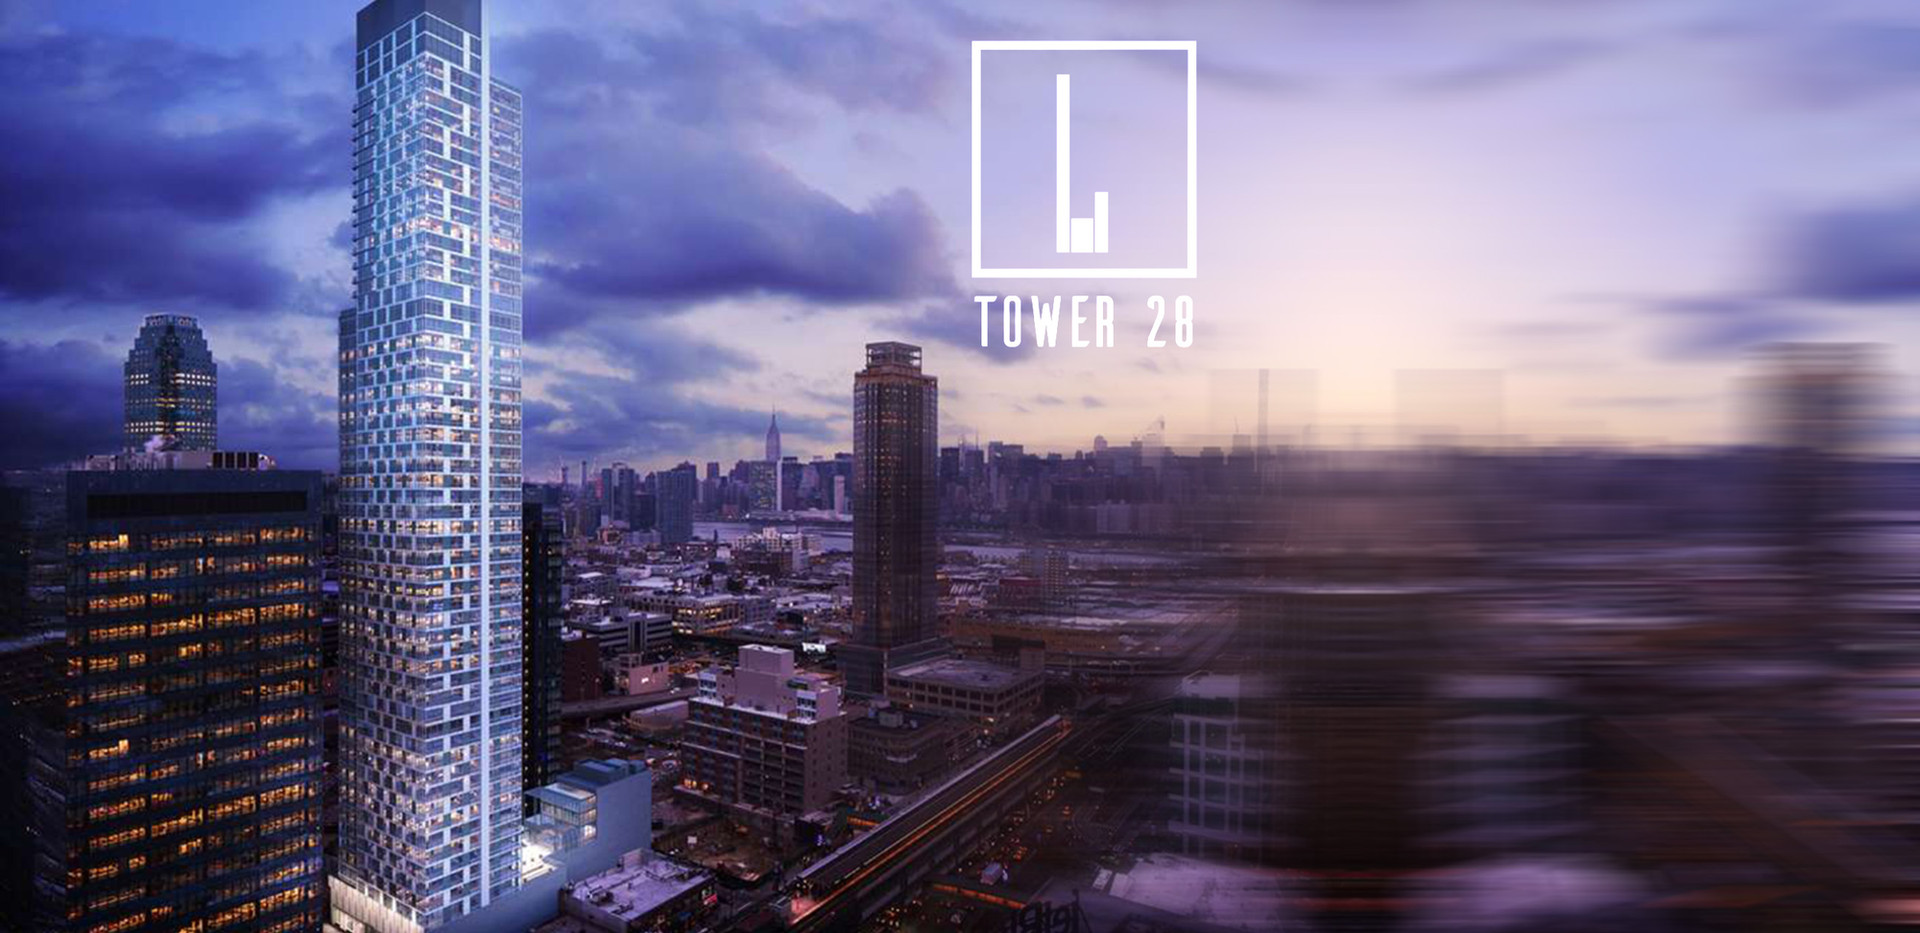 Tower 28